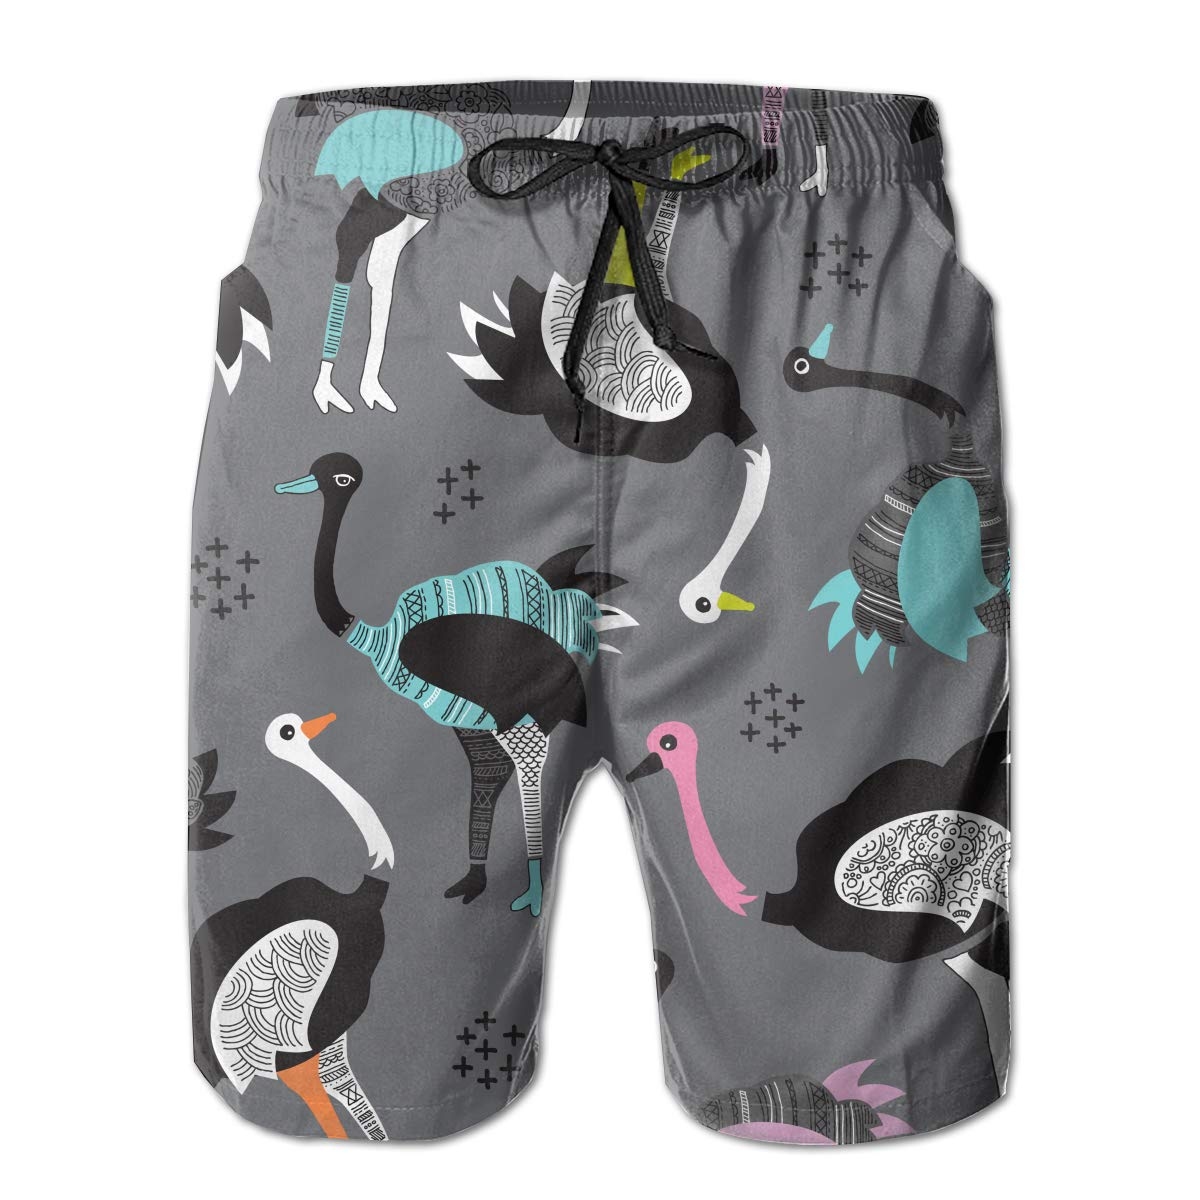 FRS Ltd Colored Ostrich Mens Quick Dry Swim Trunks Beach Board Short Elastic Waist Vacation Surfing Shorts